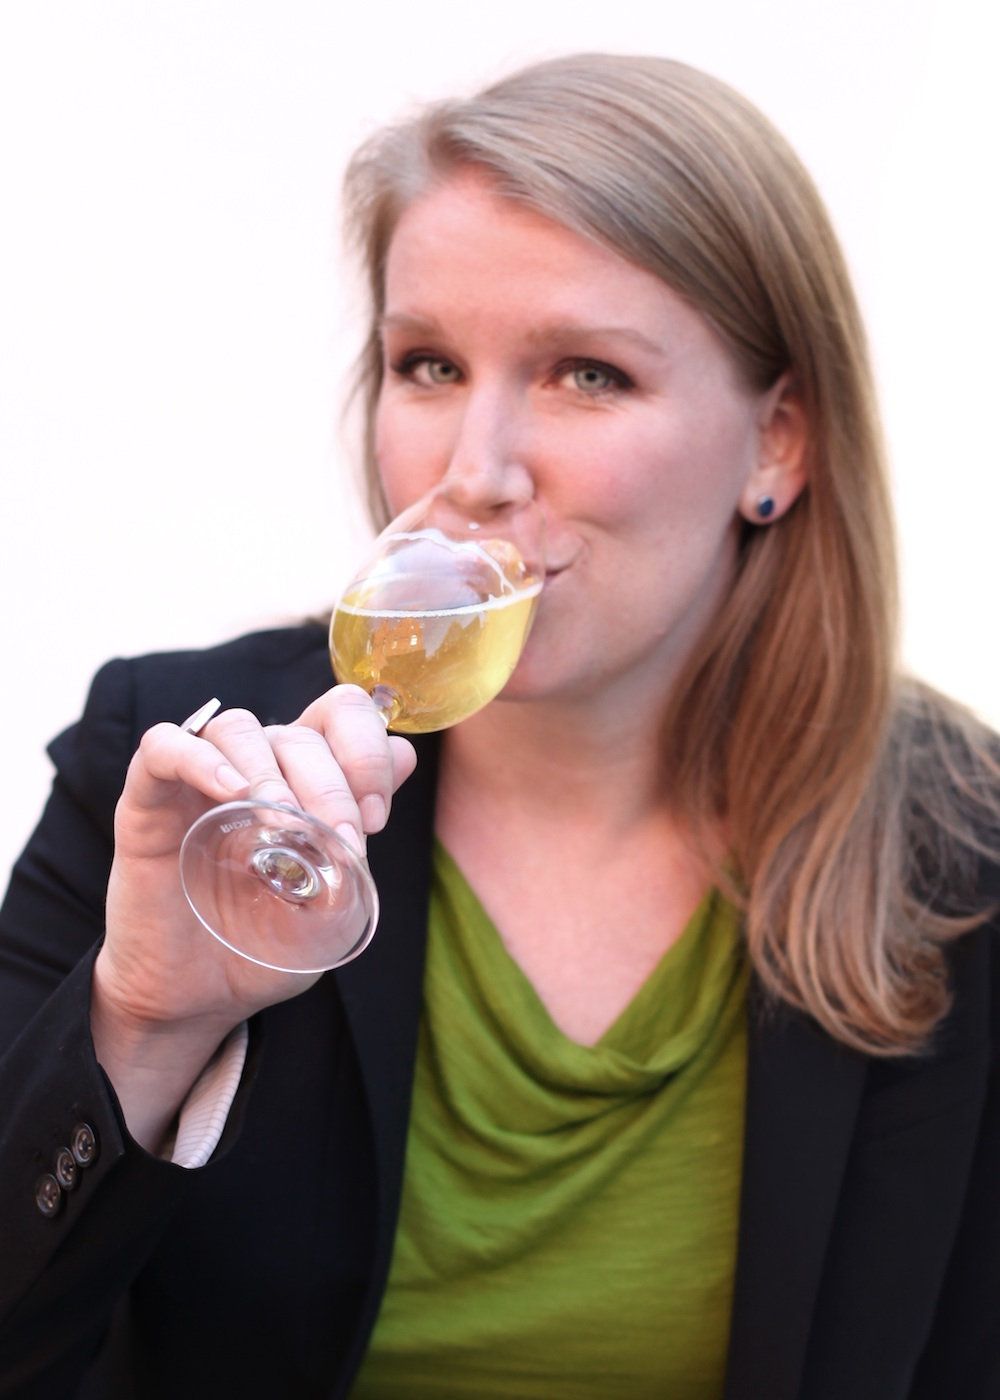 JILL ZIMORSKI, 4.26.19 - Jill Zimorski is a wine industry vet, having been in the business since 2002. She has run beverage programs at some of the country's most prestigious restaurants, and today she is a Champagne Specialist representing wines from the Moët Hennessy portfolio.